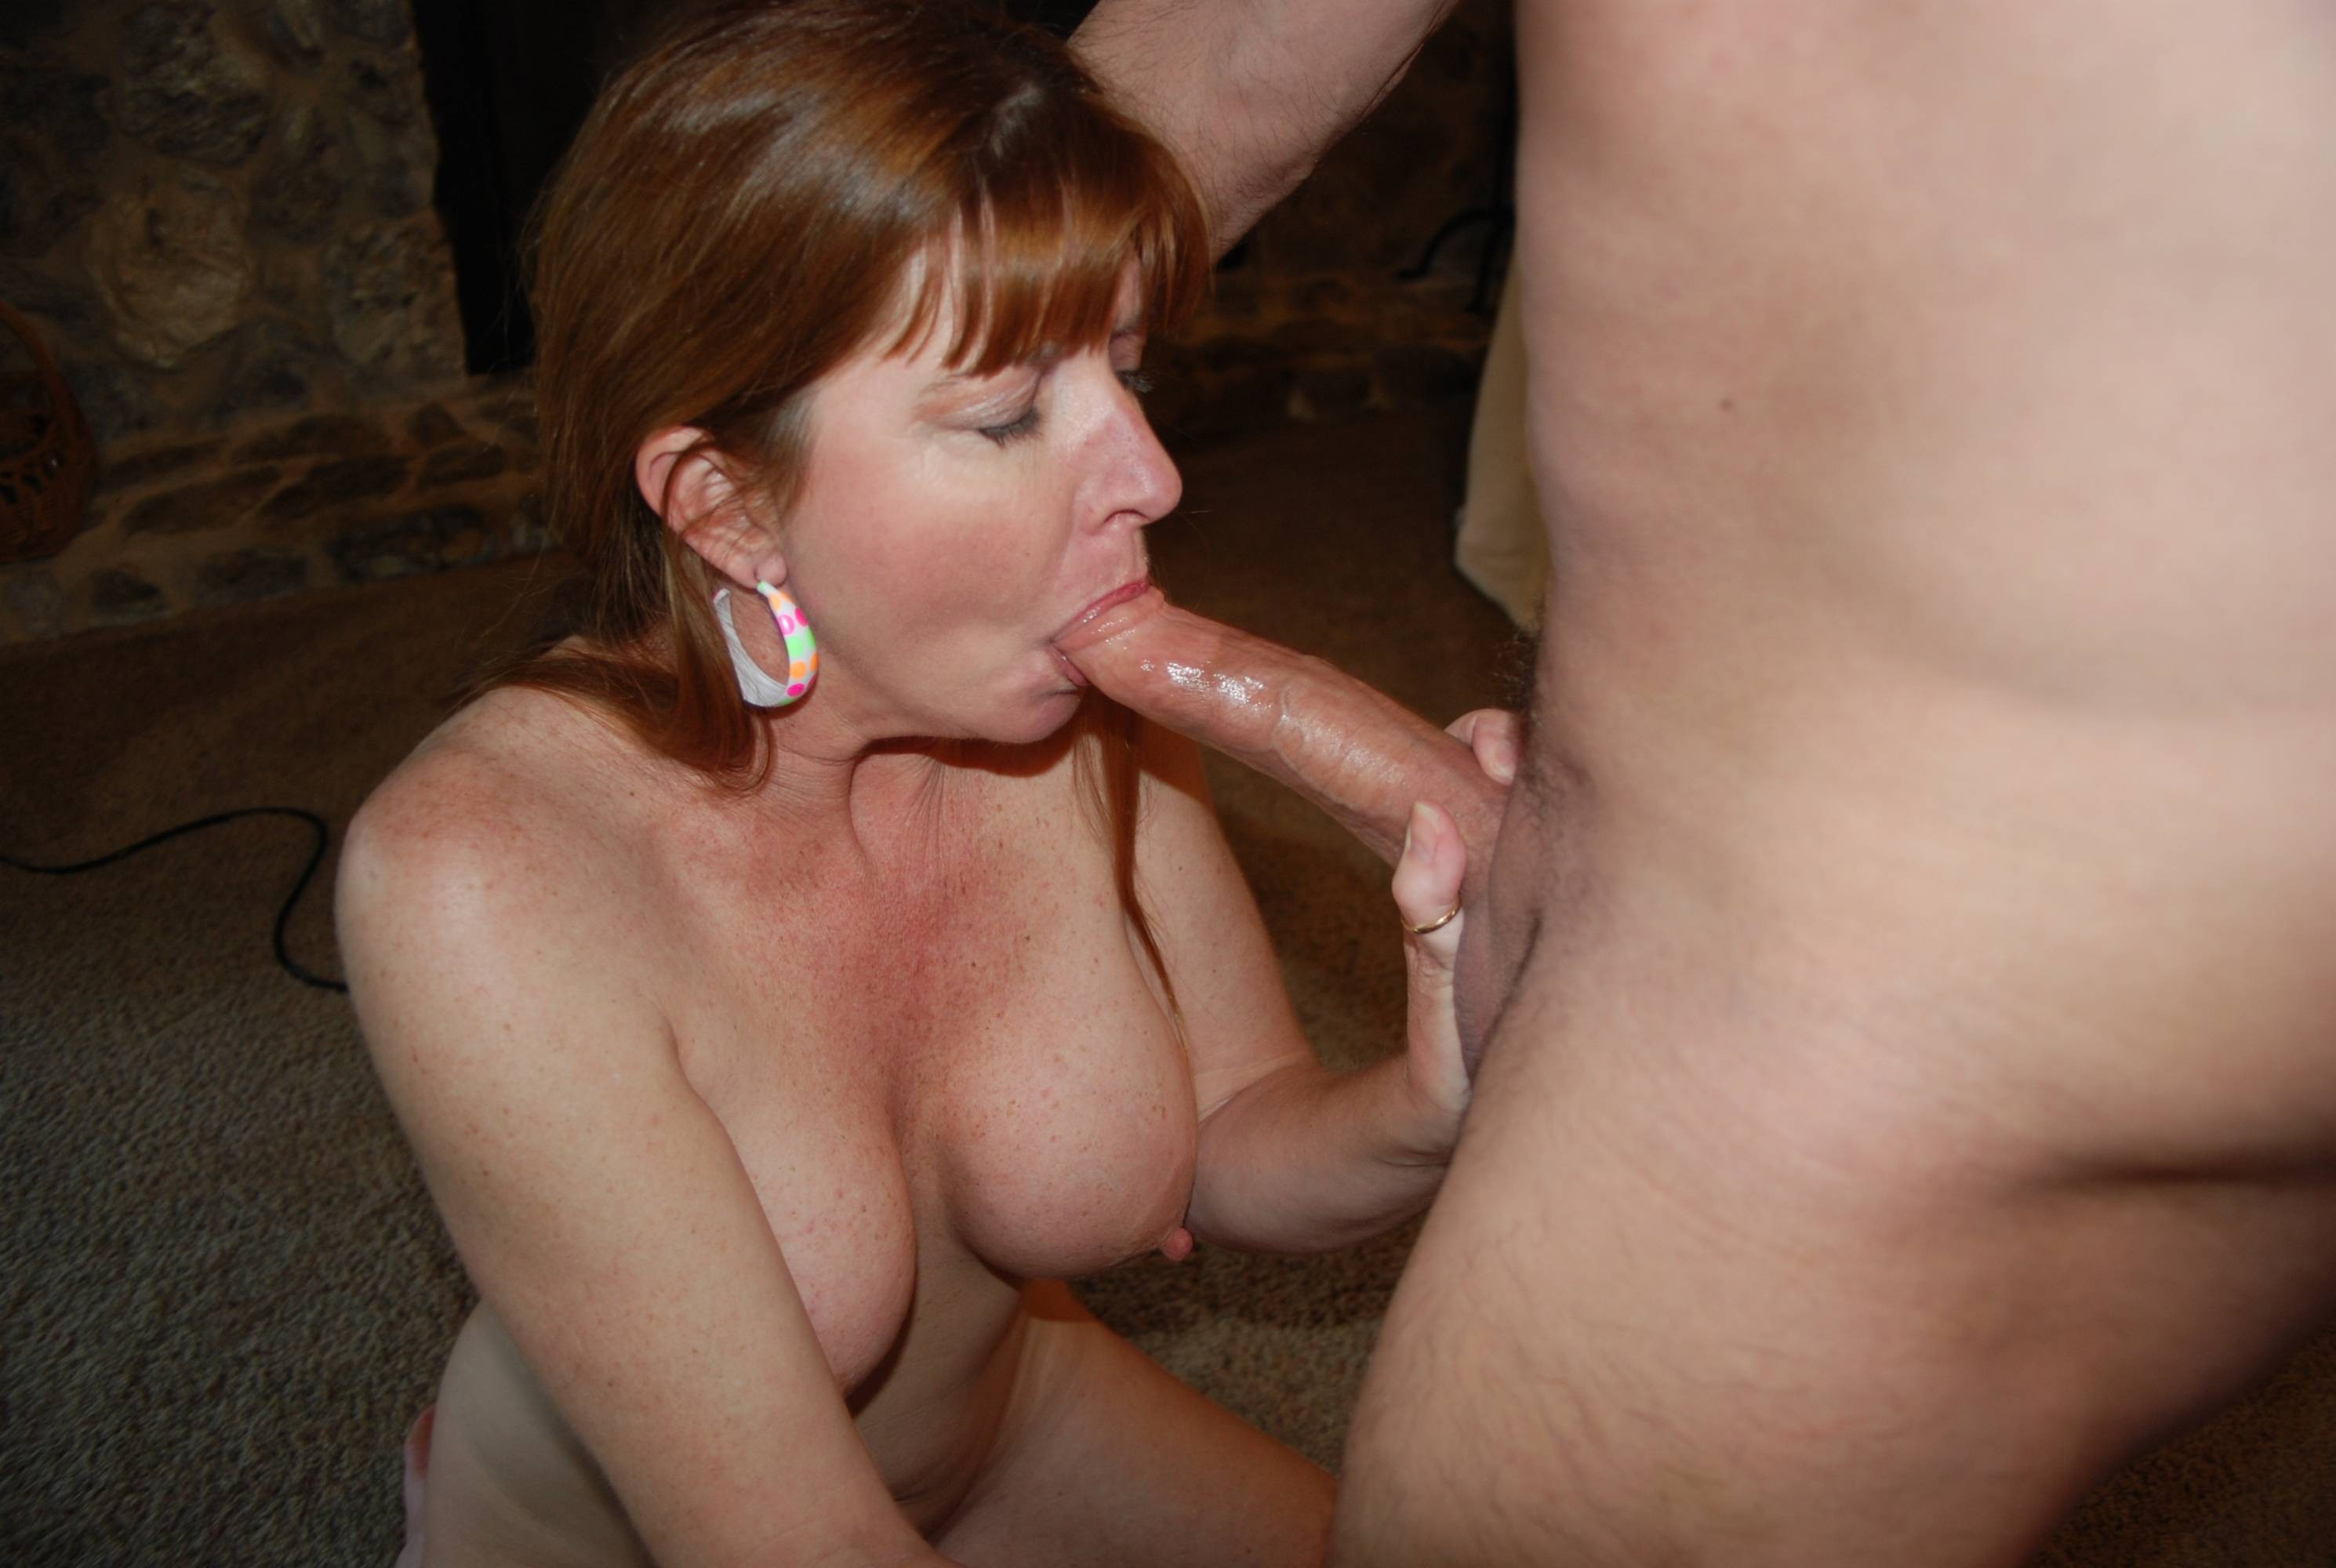 Wife gives blow jobs photo free